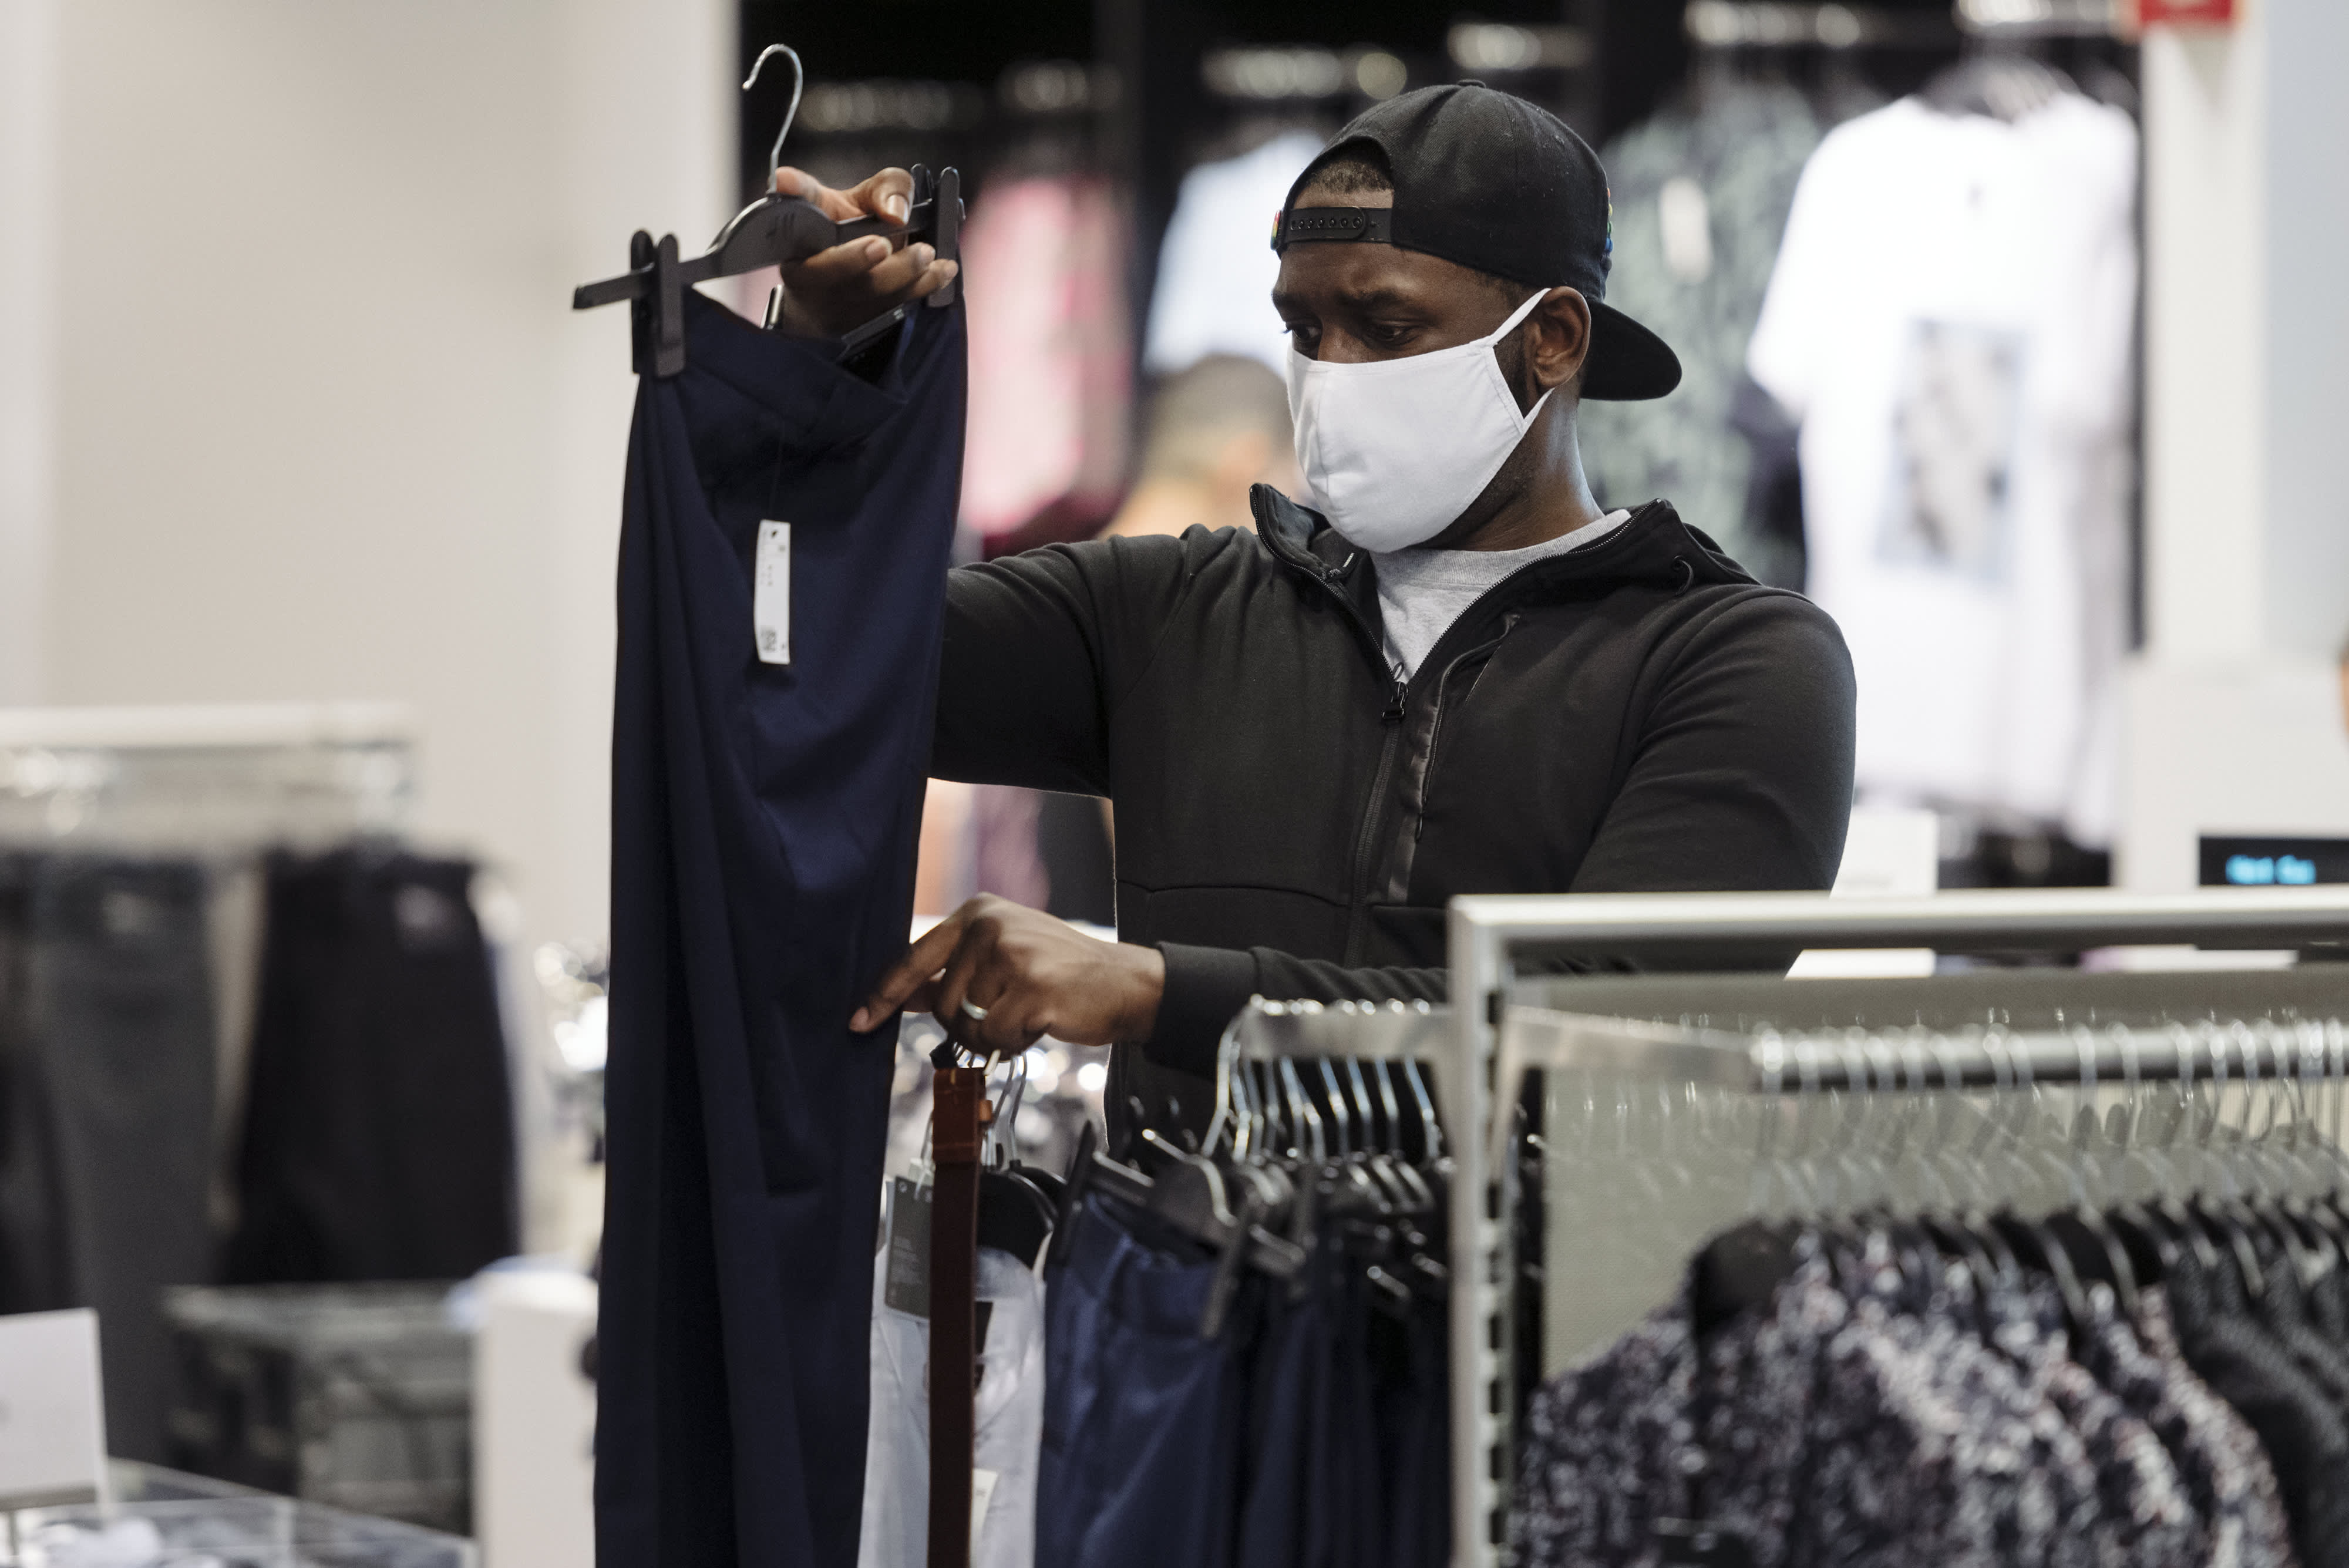 Businesses, sick of policing mask use, ask government to step in